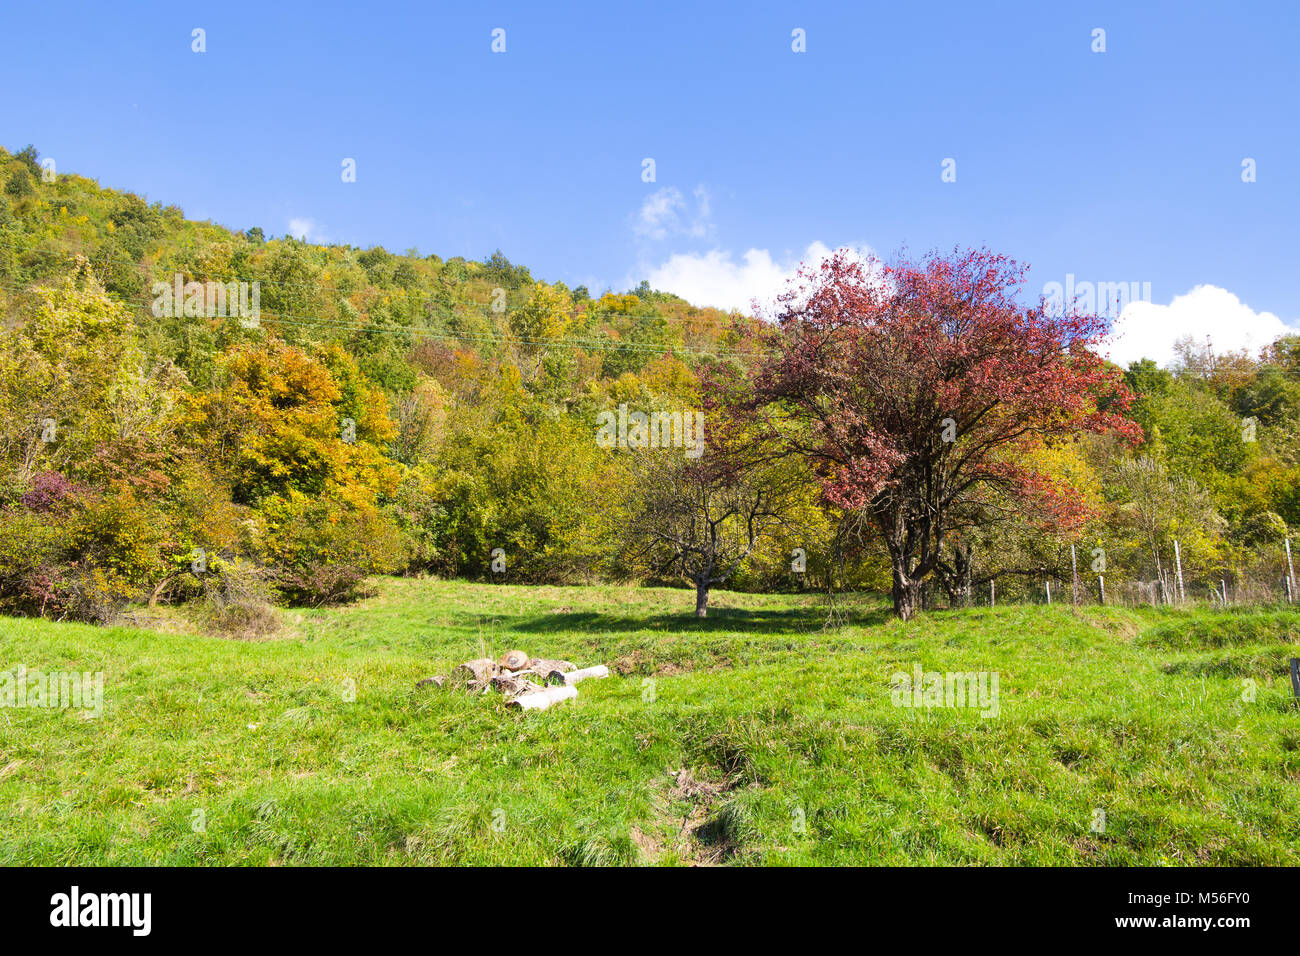 Meadow with trees with autumn colors/ autumn/ trees/ colurs/ green/ meadow - Stock Image